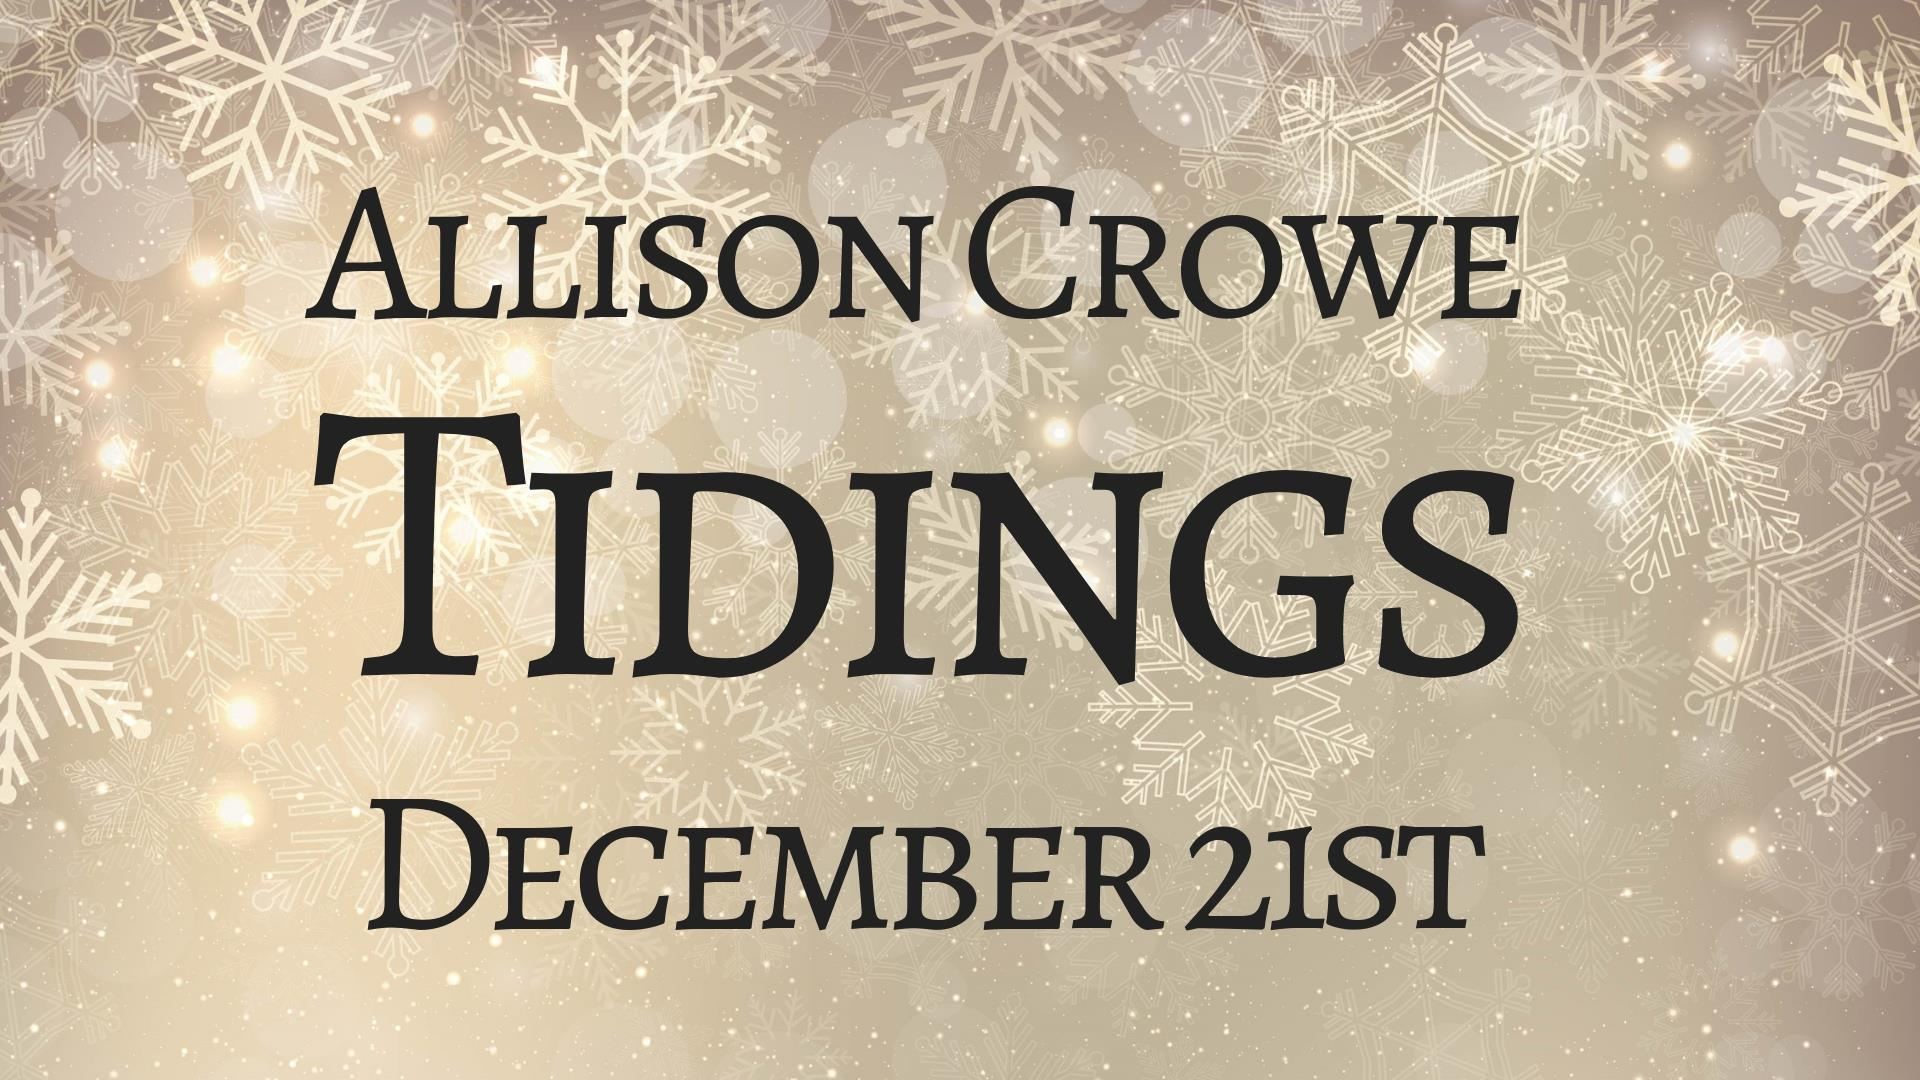 Tidings 2018 - RAC Corner Brook - Allison Crowe